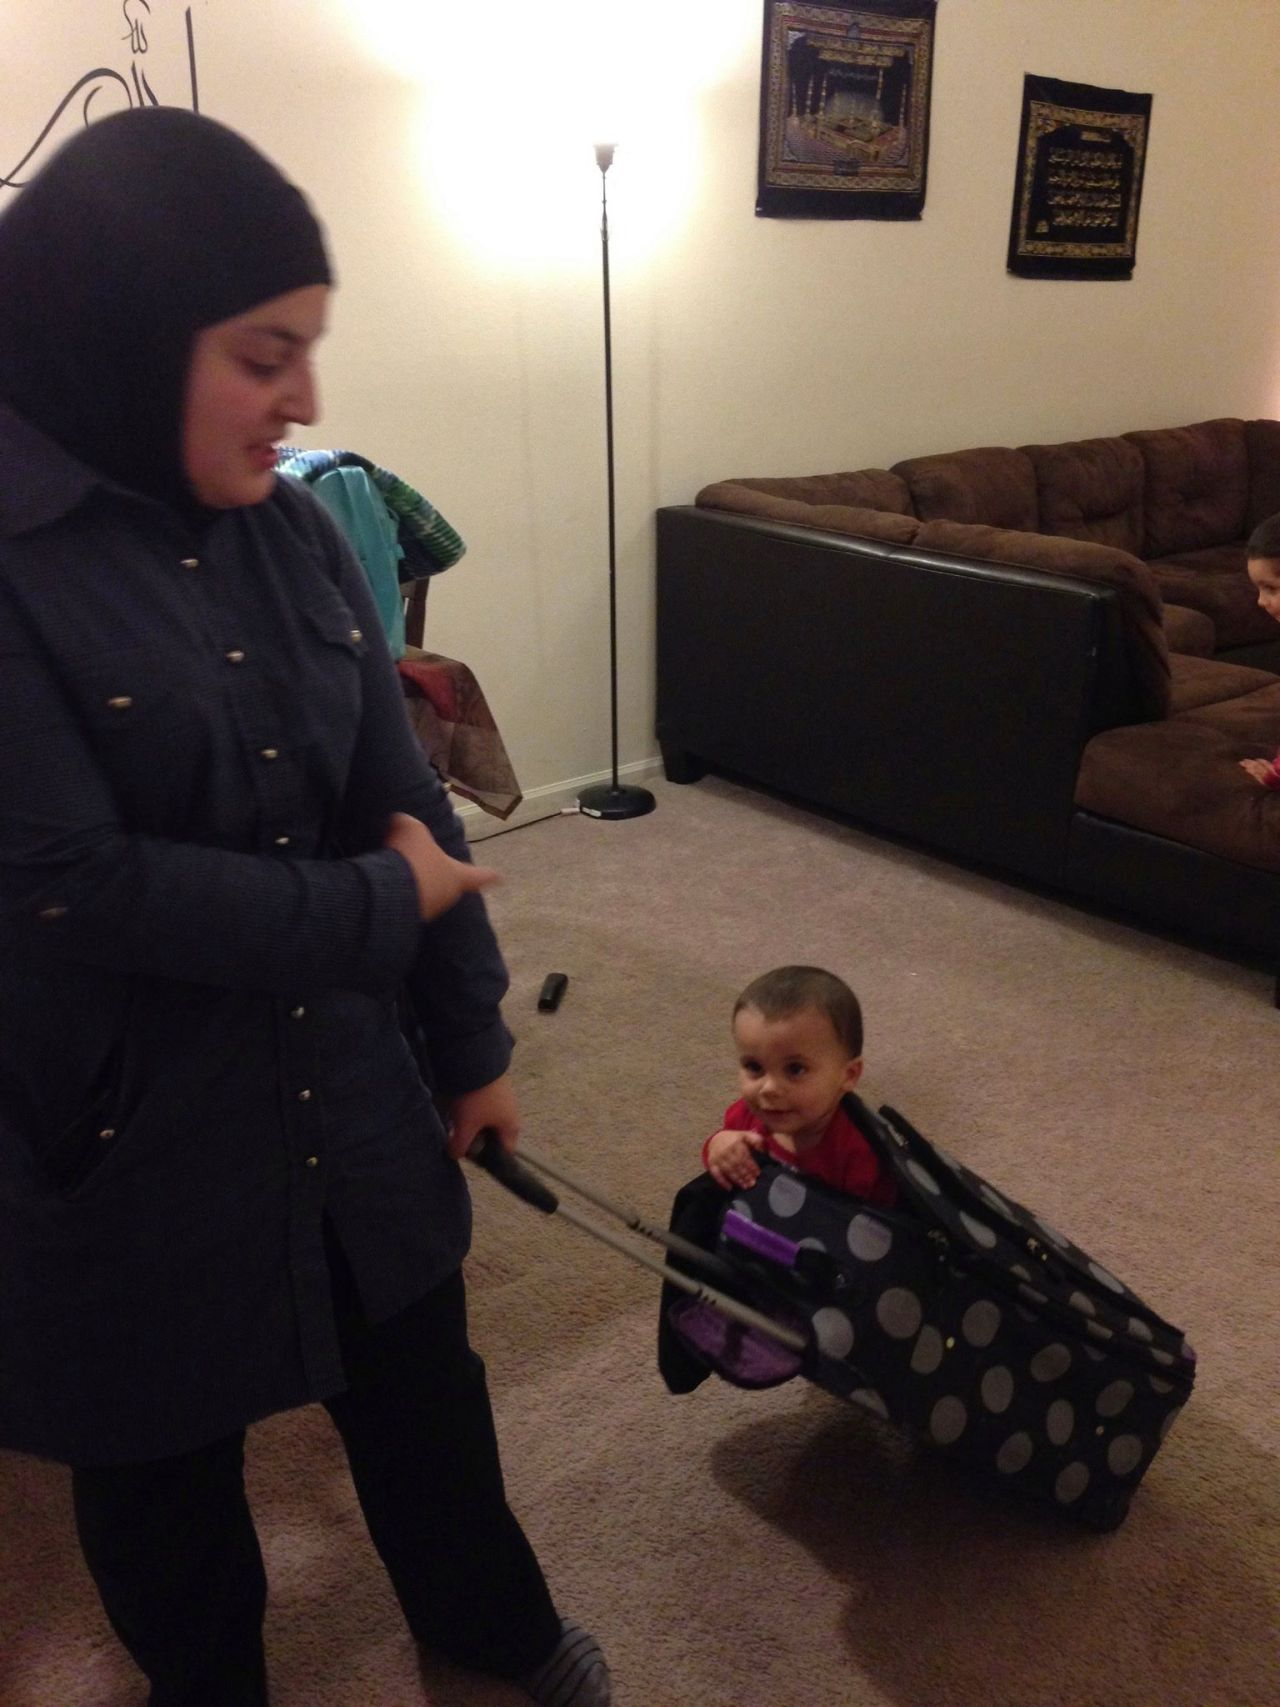 Mona pulling a black and grey luggage bag with a toddler inside it.